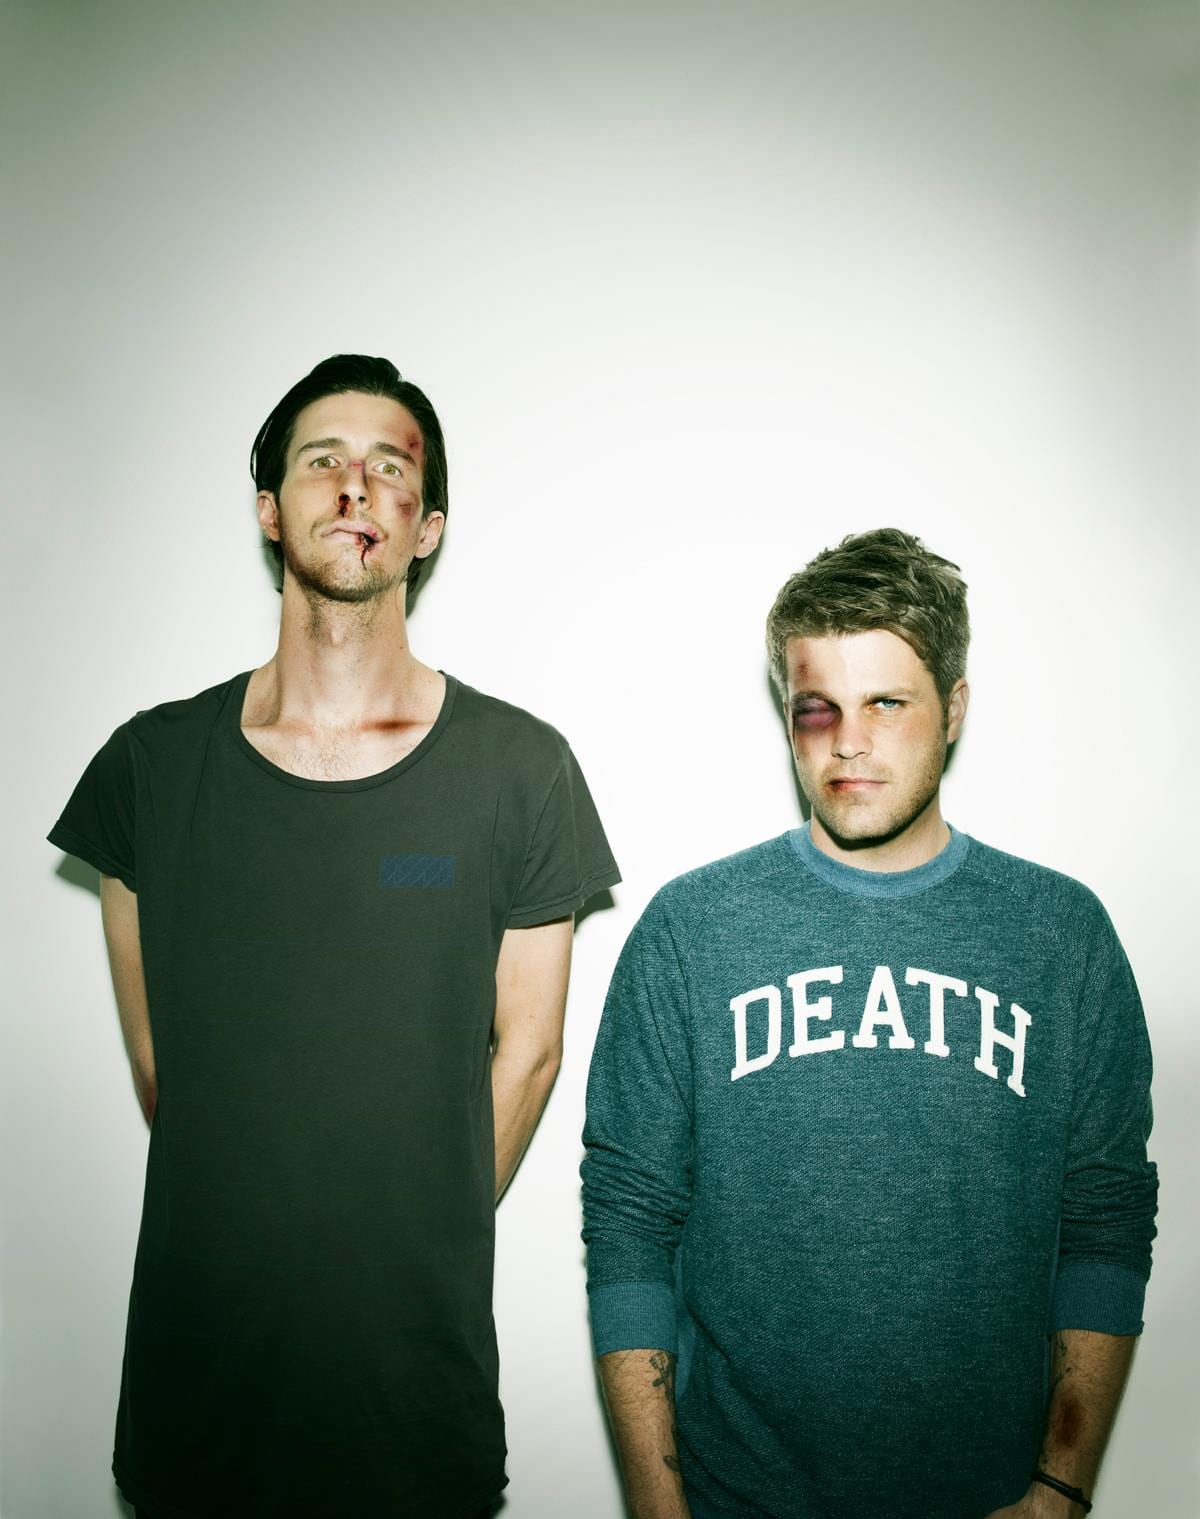 3OH!3 band